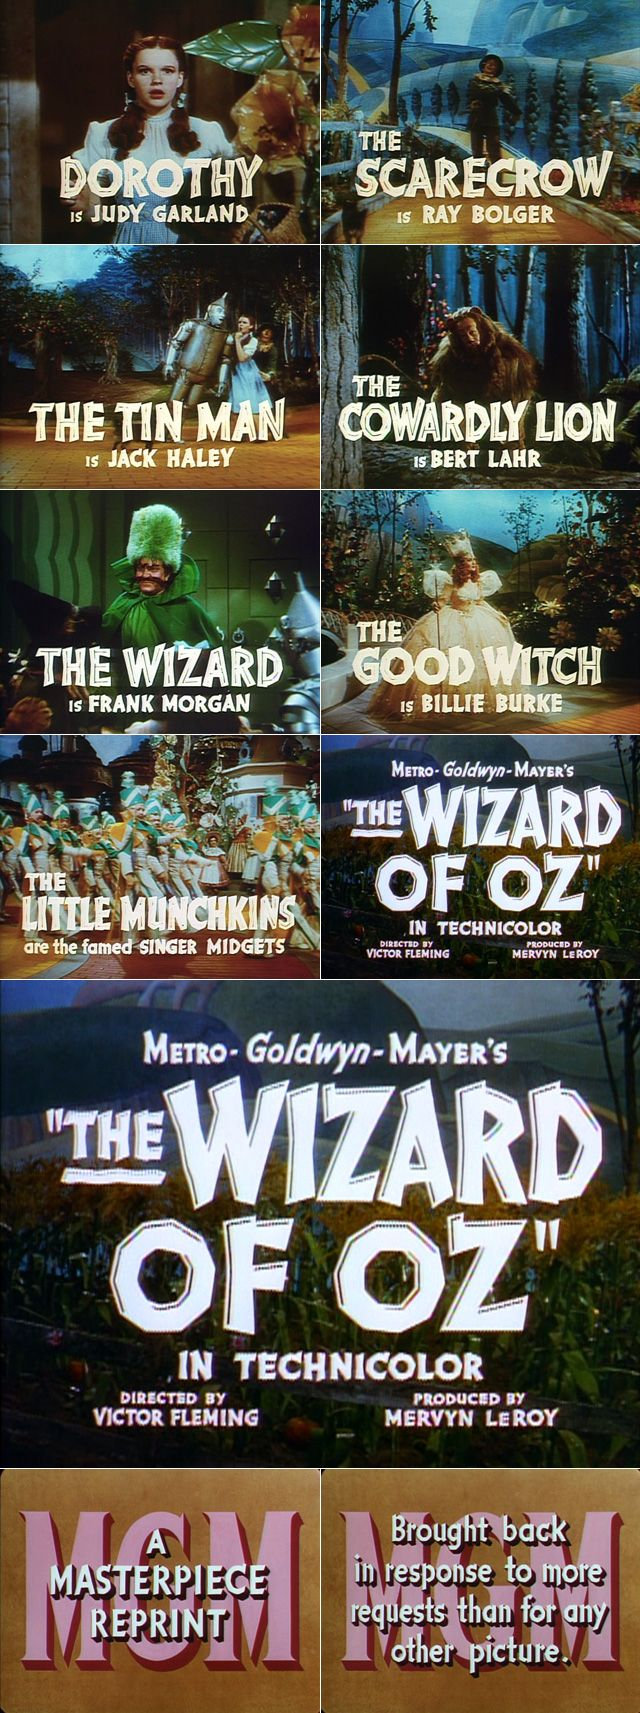 The Wizard of Oz (1939) trailer typography